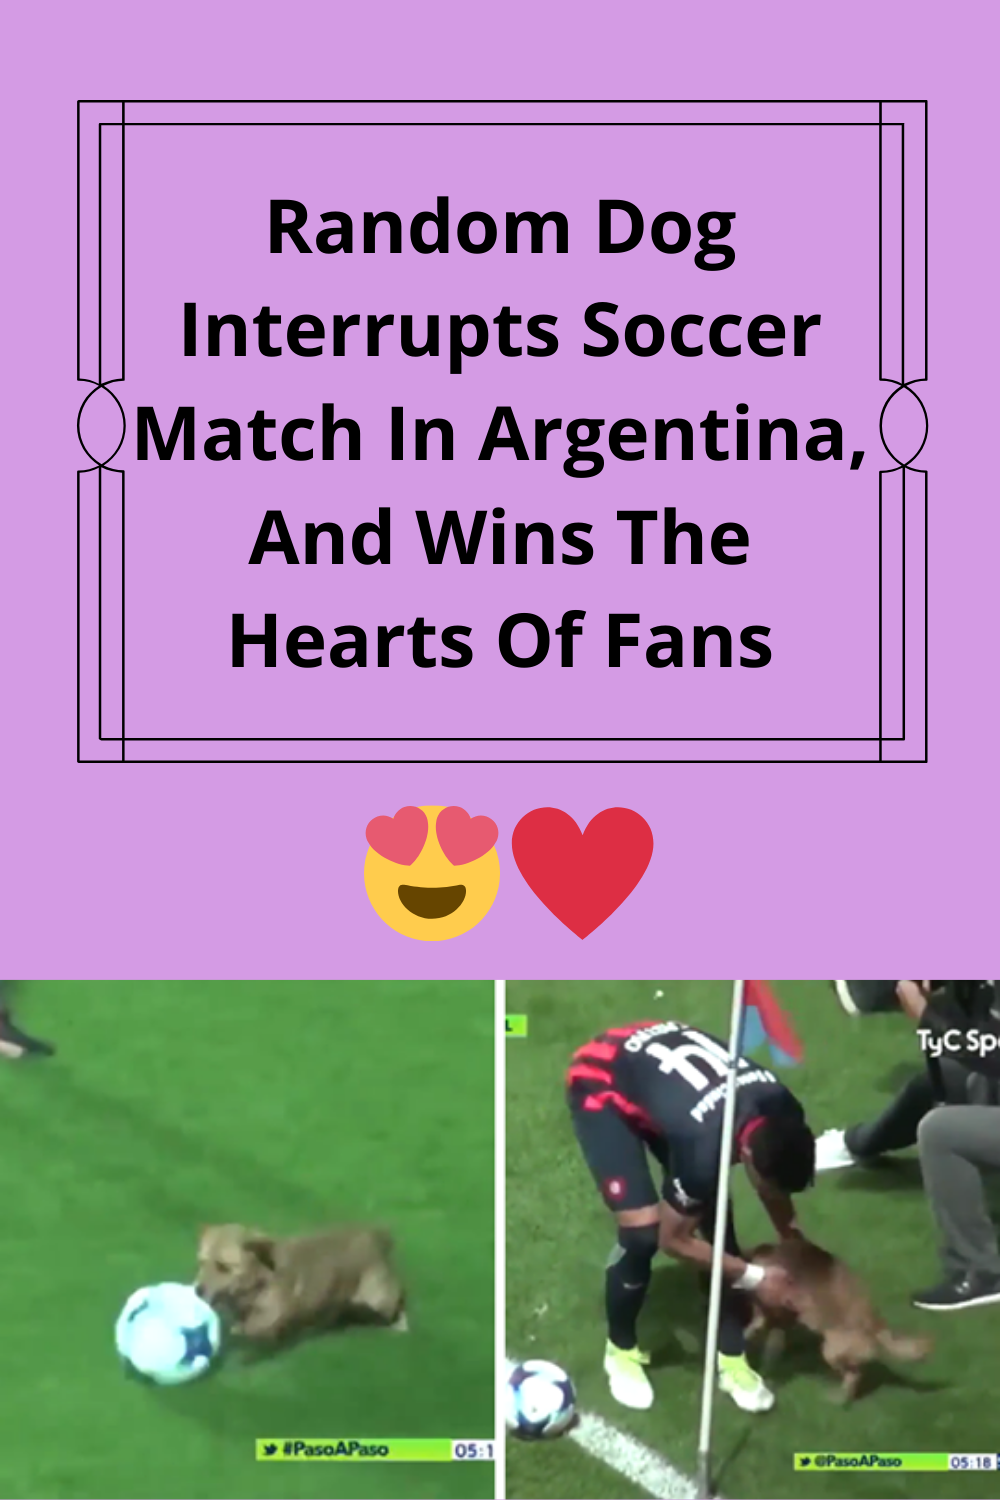 Random Dog Interrupts Soccer Match In Argentina, And Wins